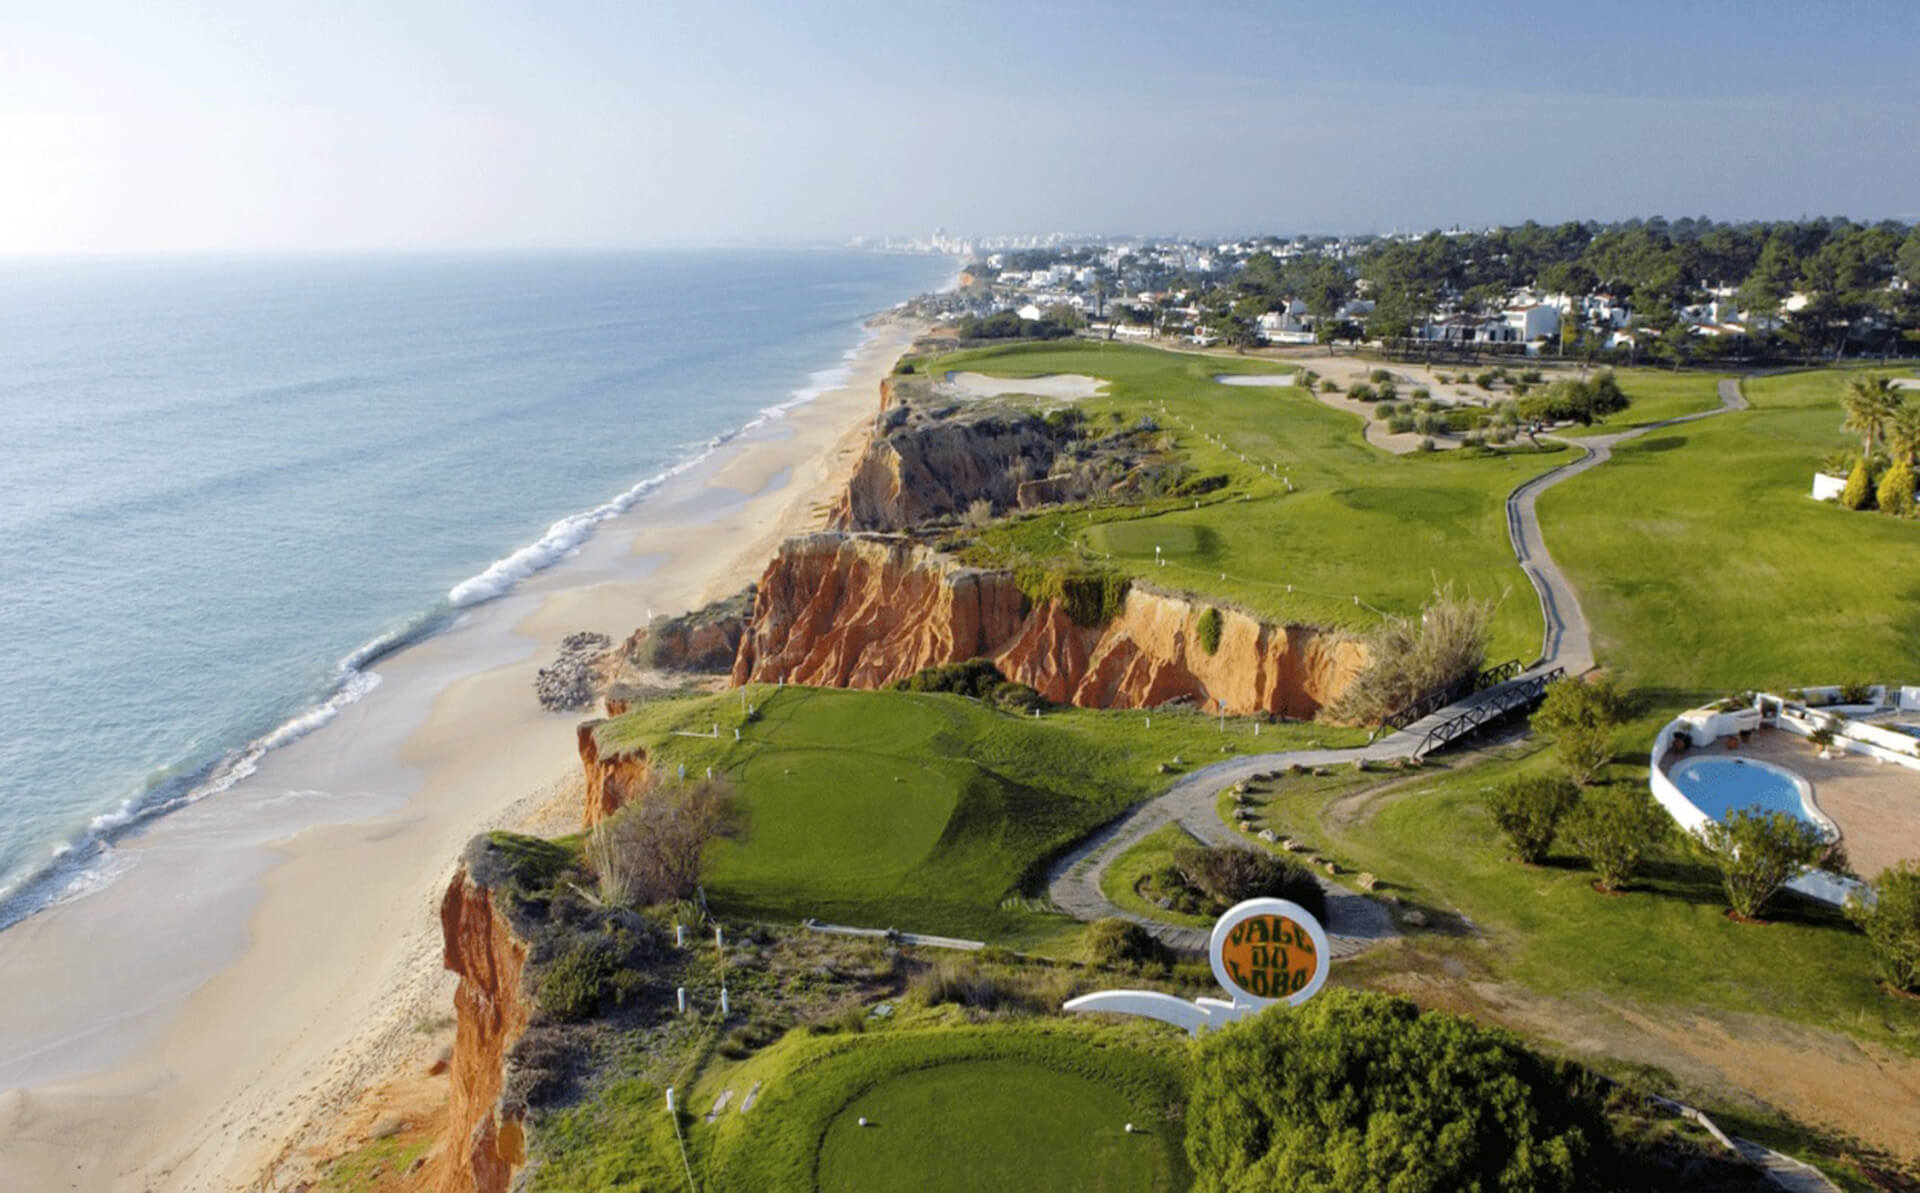 Vale de Lobo Royal Golf Course